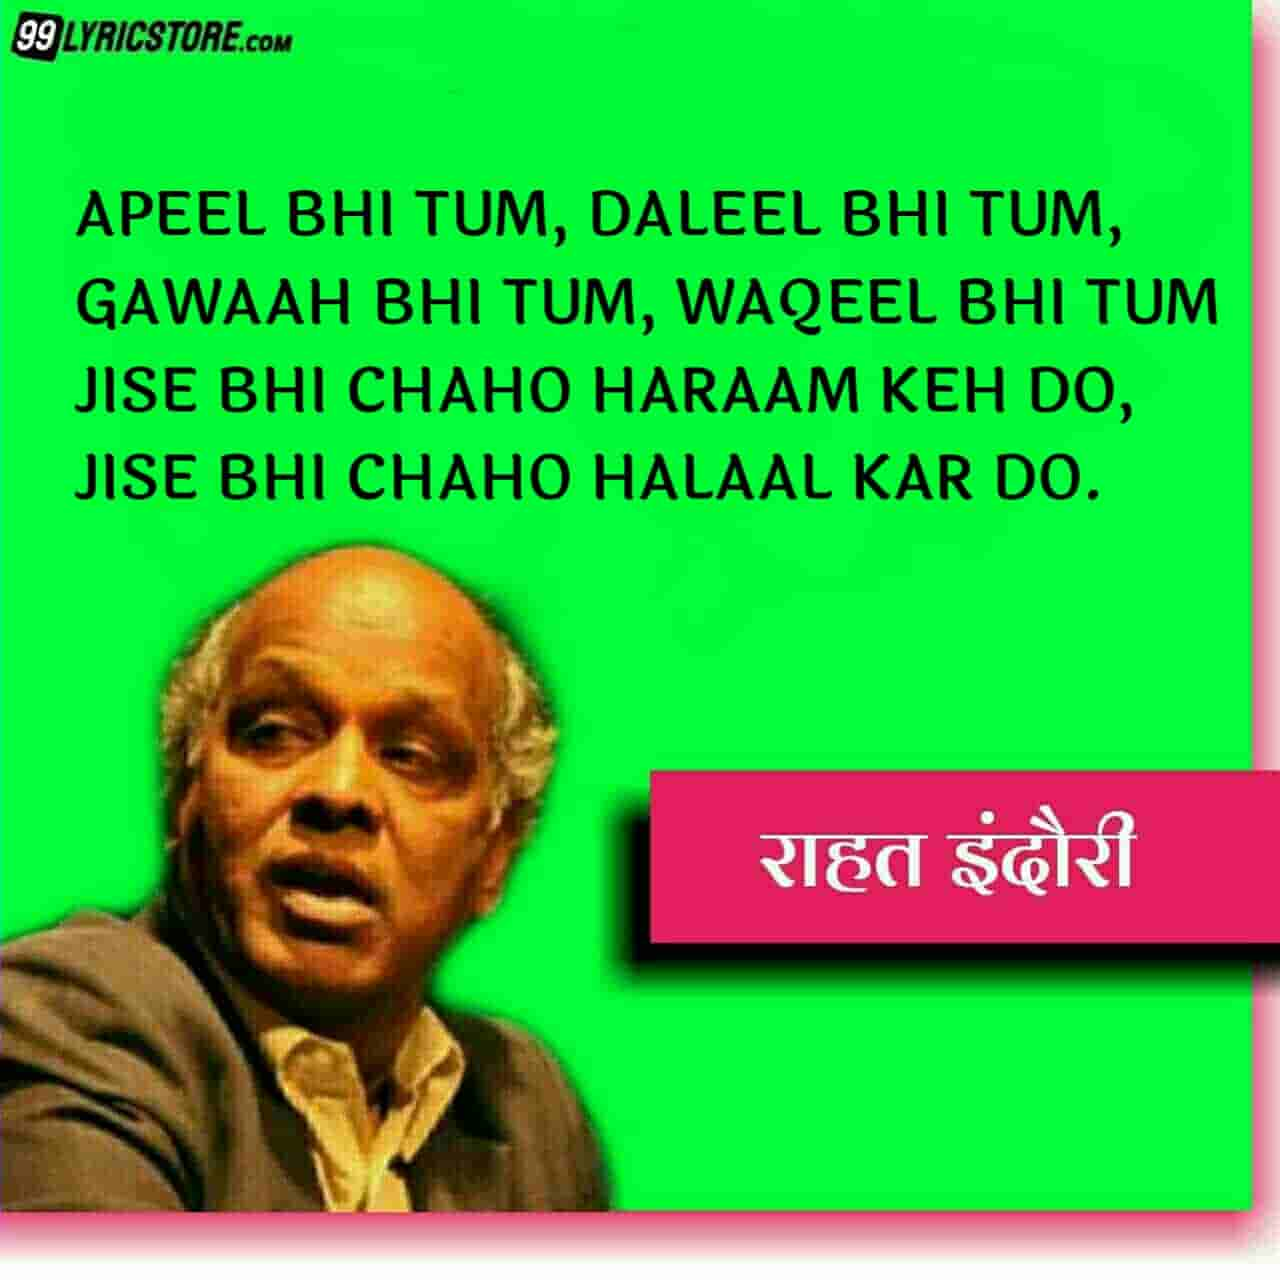 This beautiful ghazal 'Jidhar Se Guzro Dhuaan Bichha Do' has written and performed by Rahat Indori.